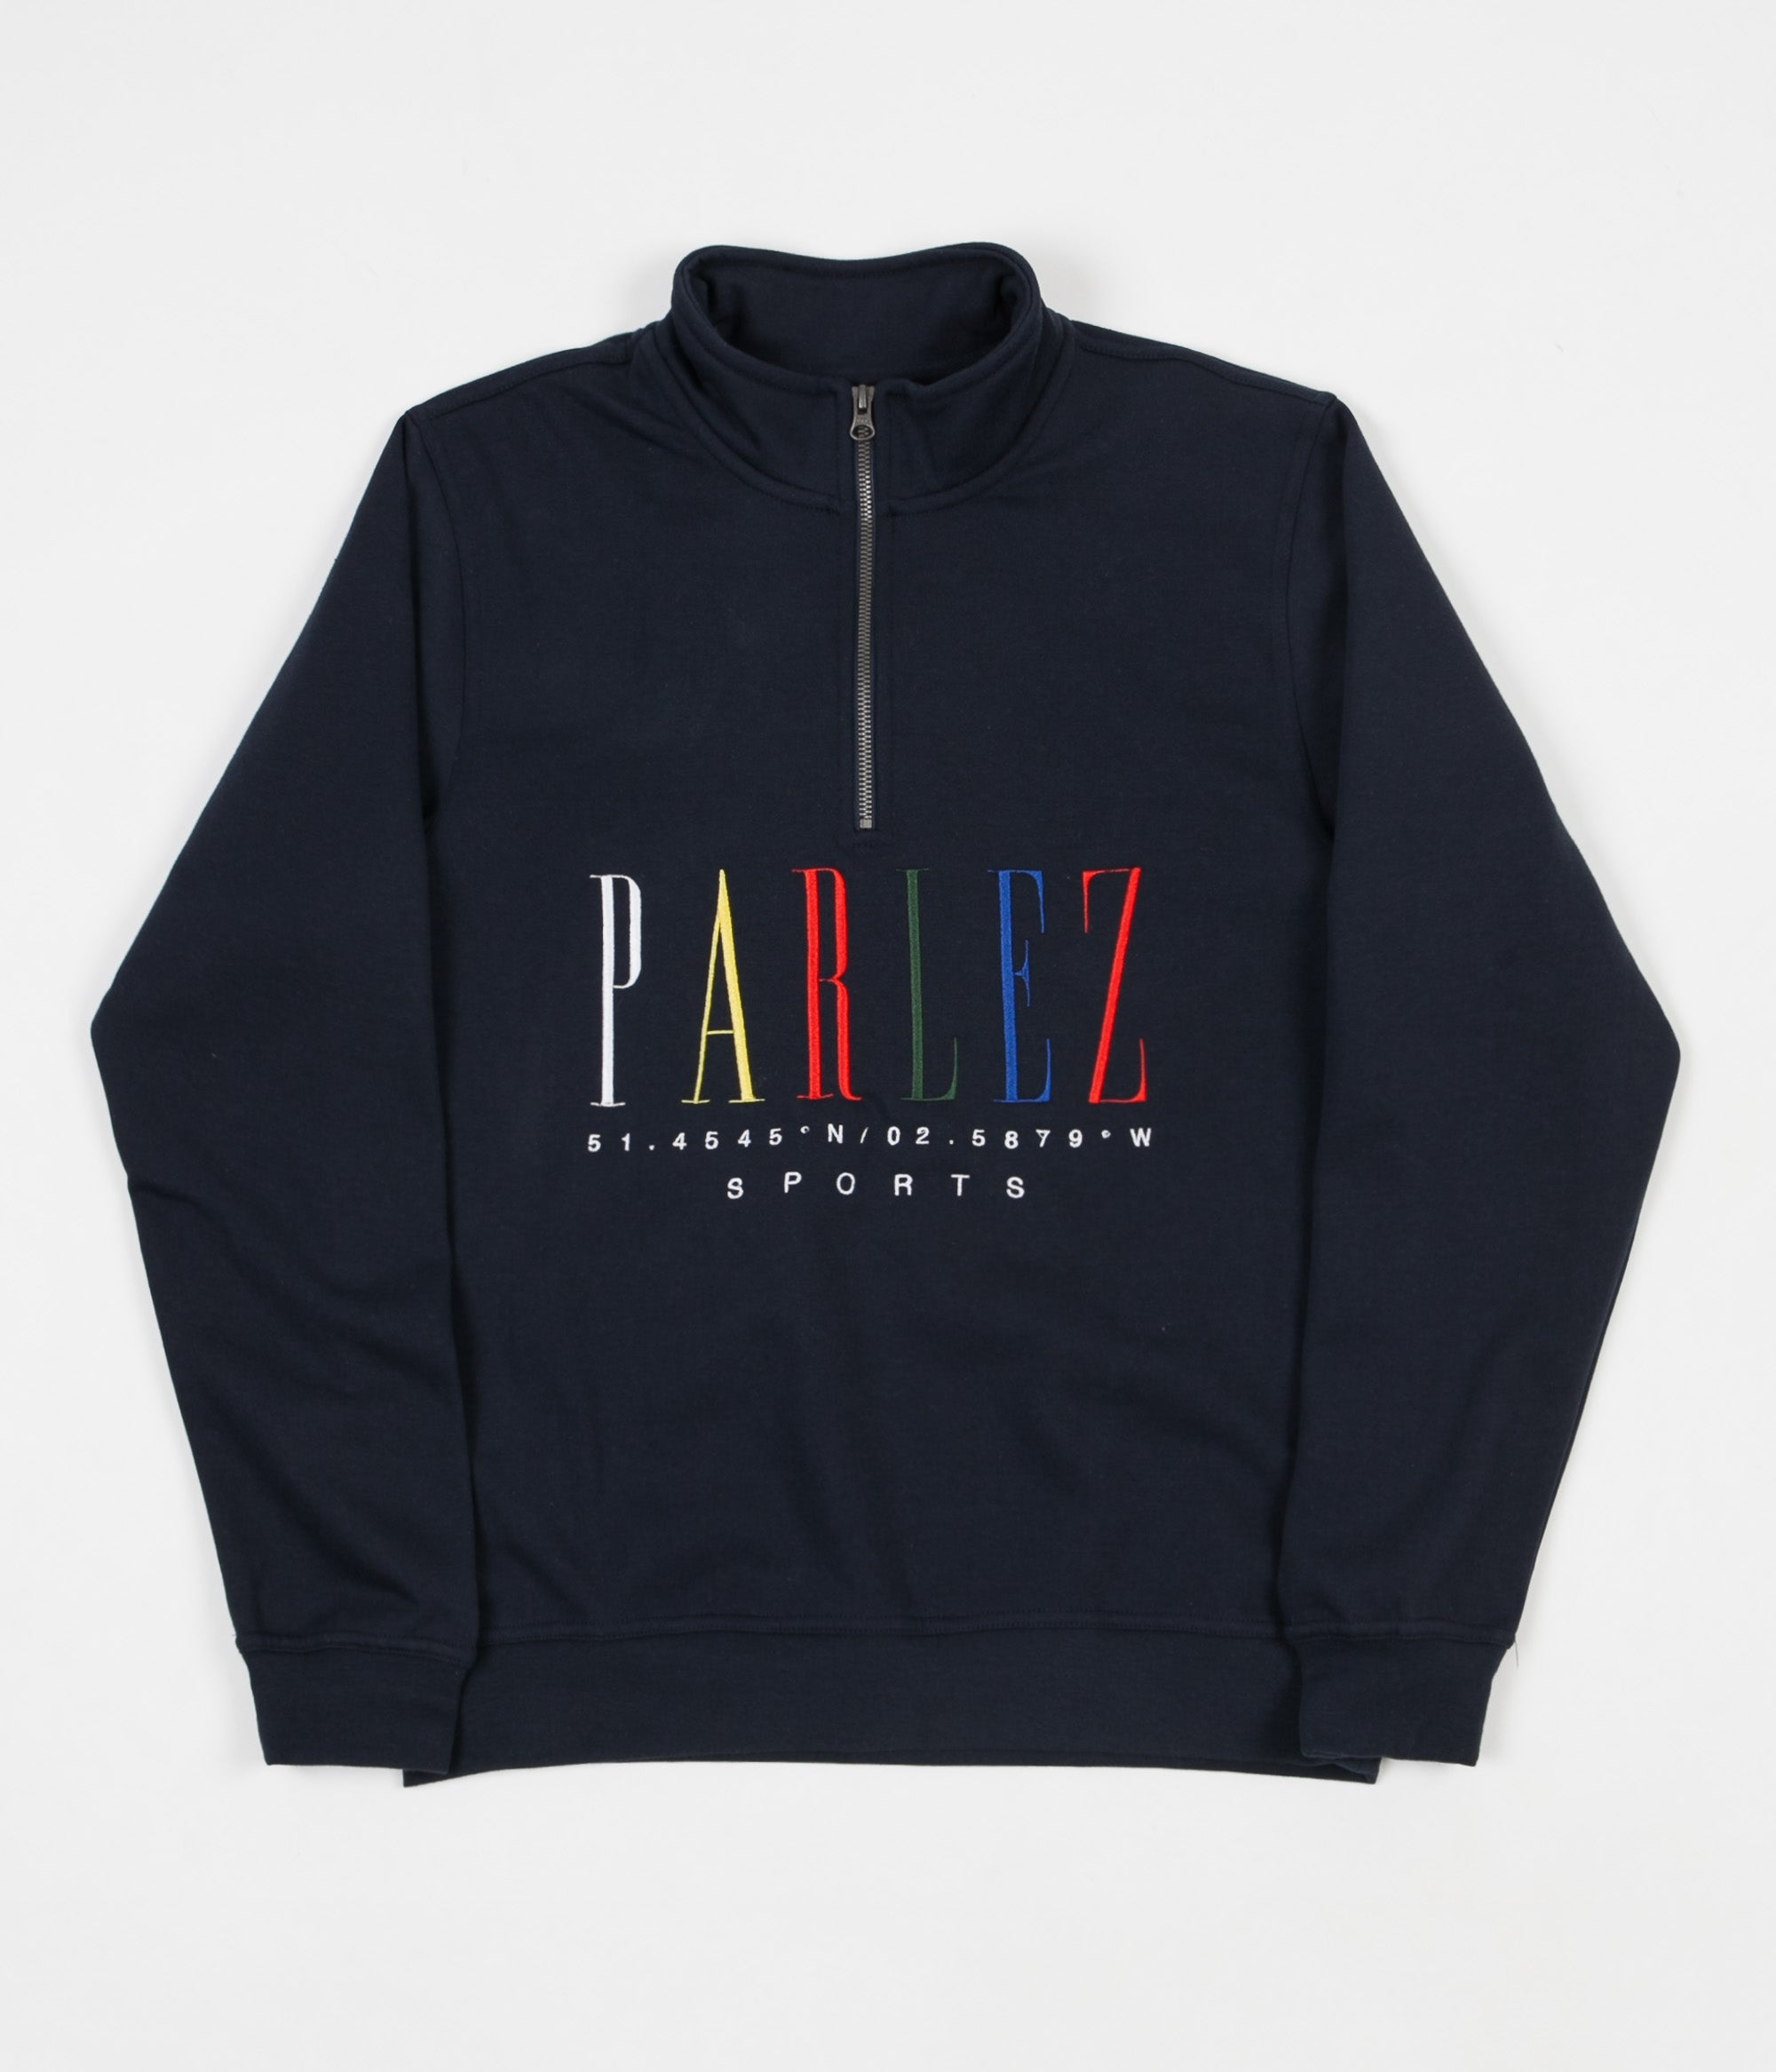 Parlez Tall Quarter Zip Sweatshirt - Navy